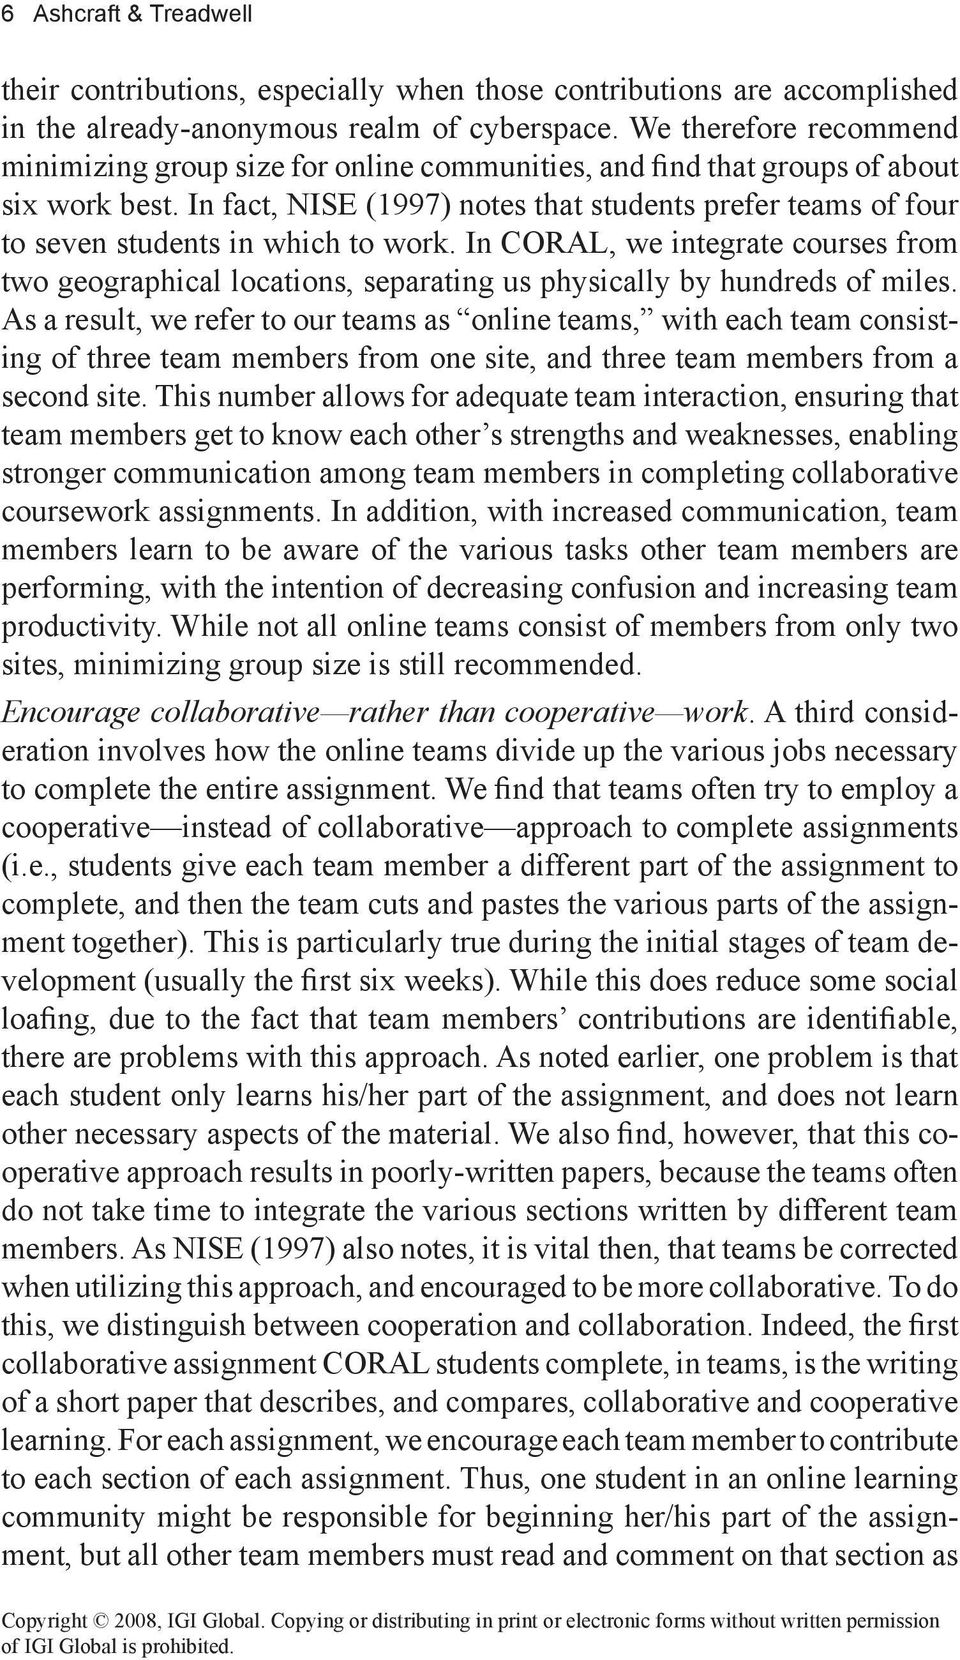 In fact, NISE (1997) notes that students prefer teams of four to seven students in which to work.